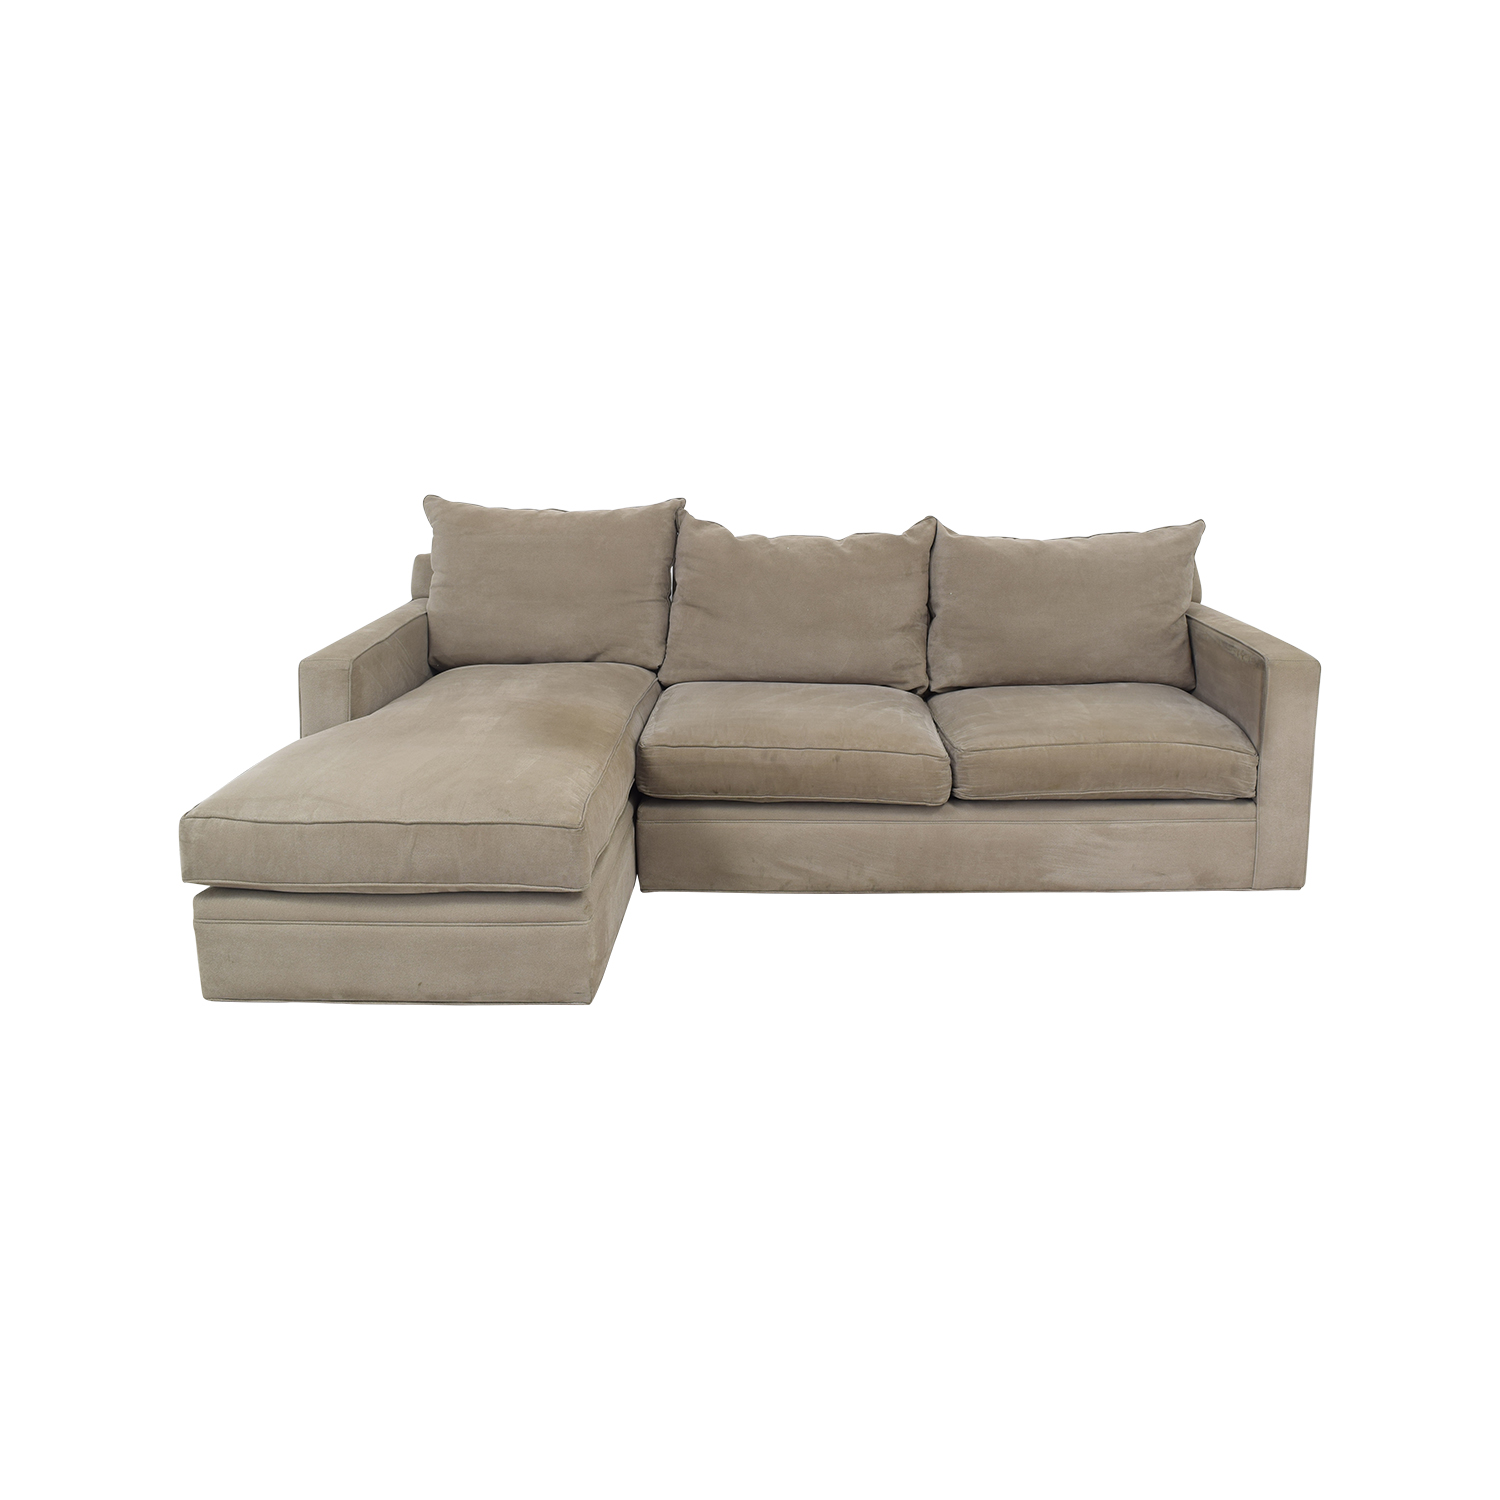 Room & Board Room & Board Orson Chaise Sectional Sofa Sofas